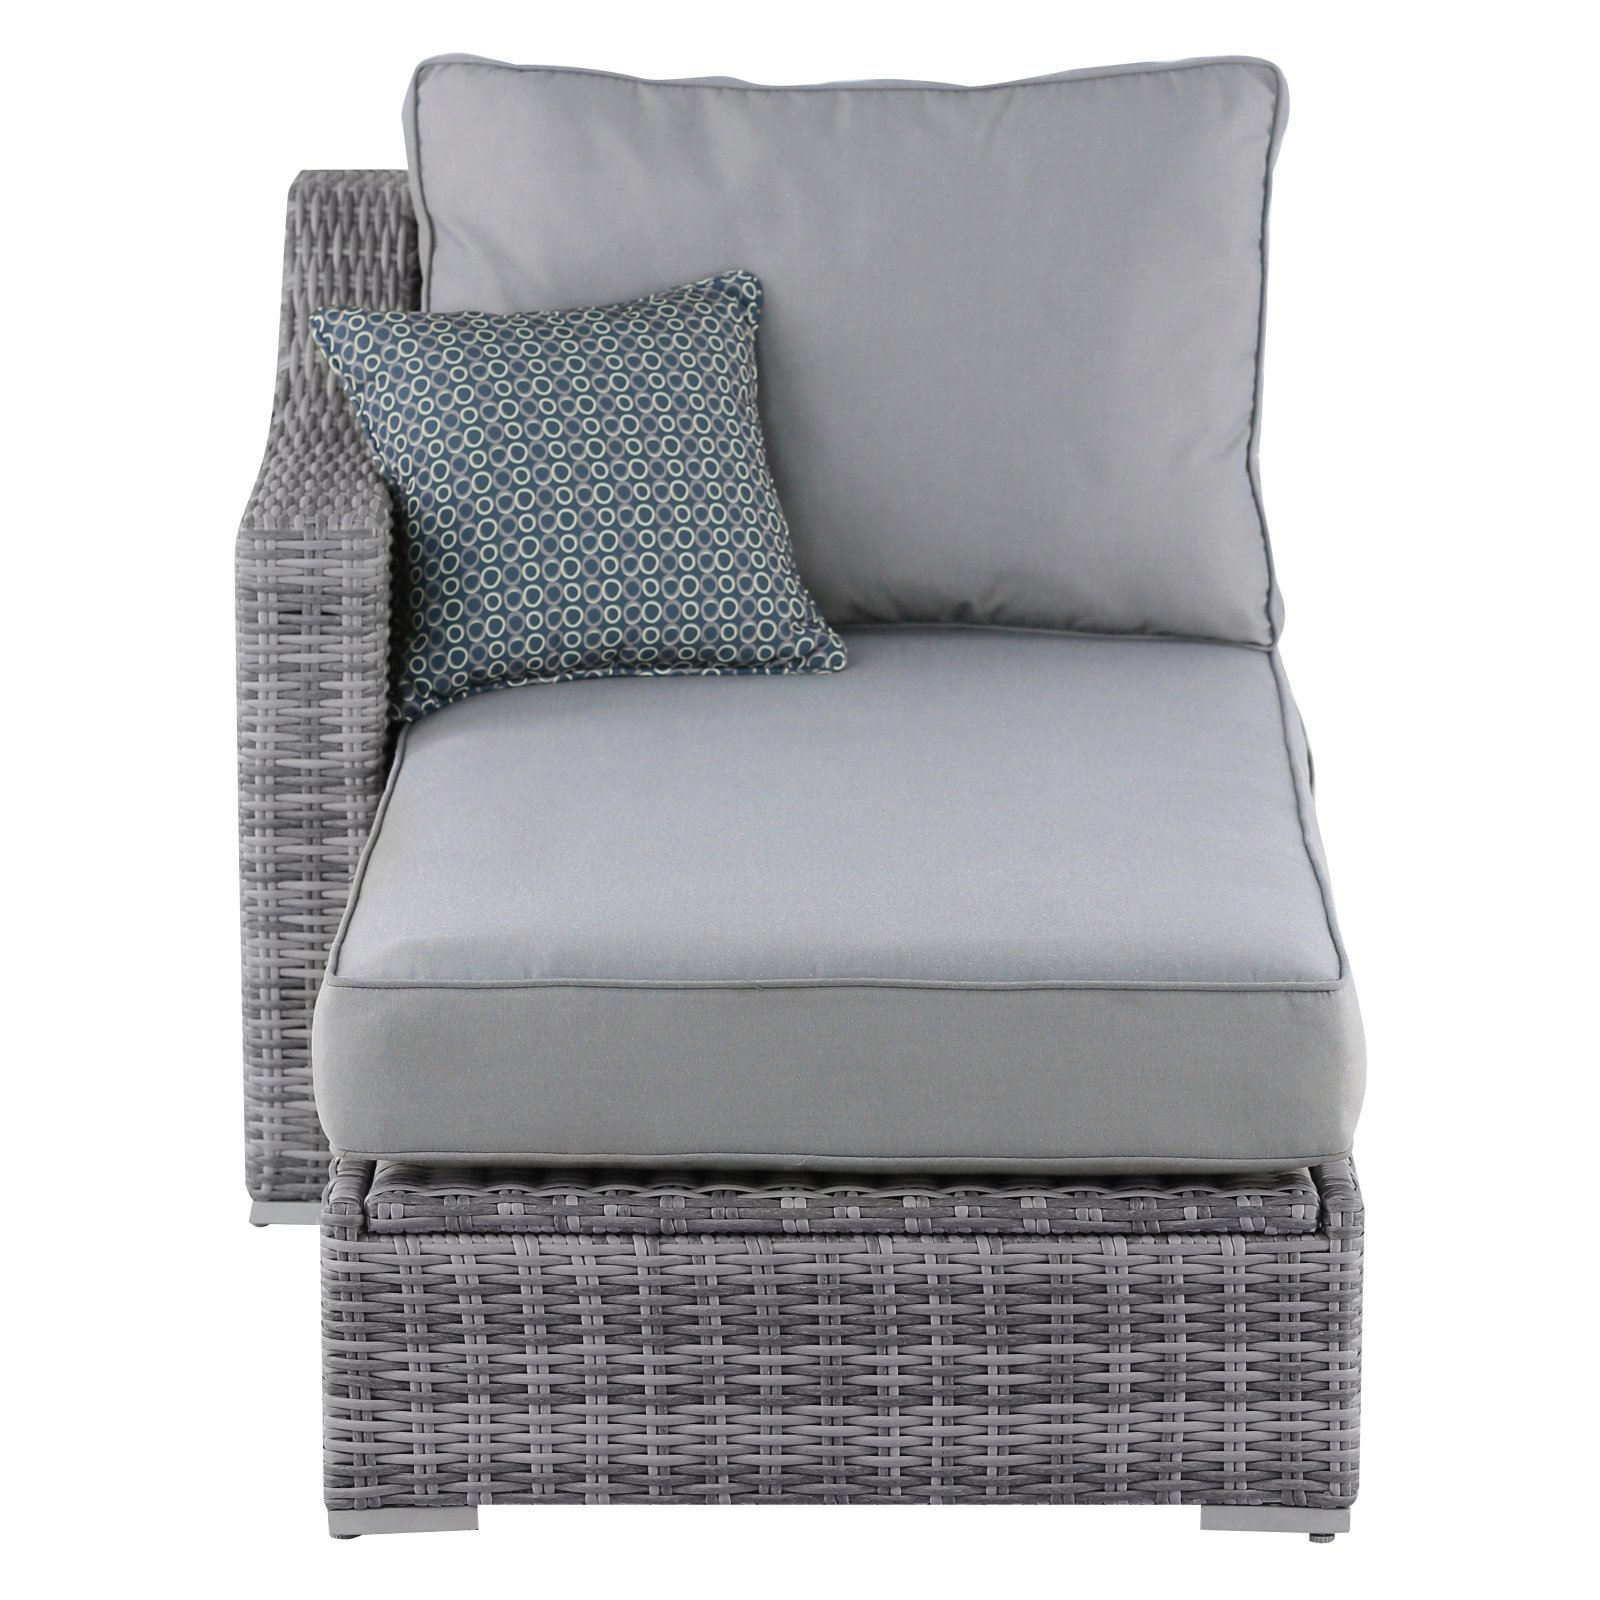 Most Recent Vallauris Sofa With Cushions Intended For Vallauris Wicker Patio Storage Sectional Sofa (View 7 of 20)